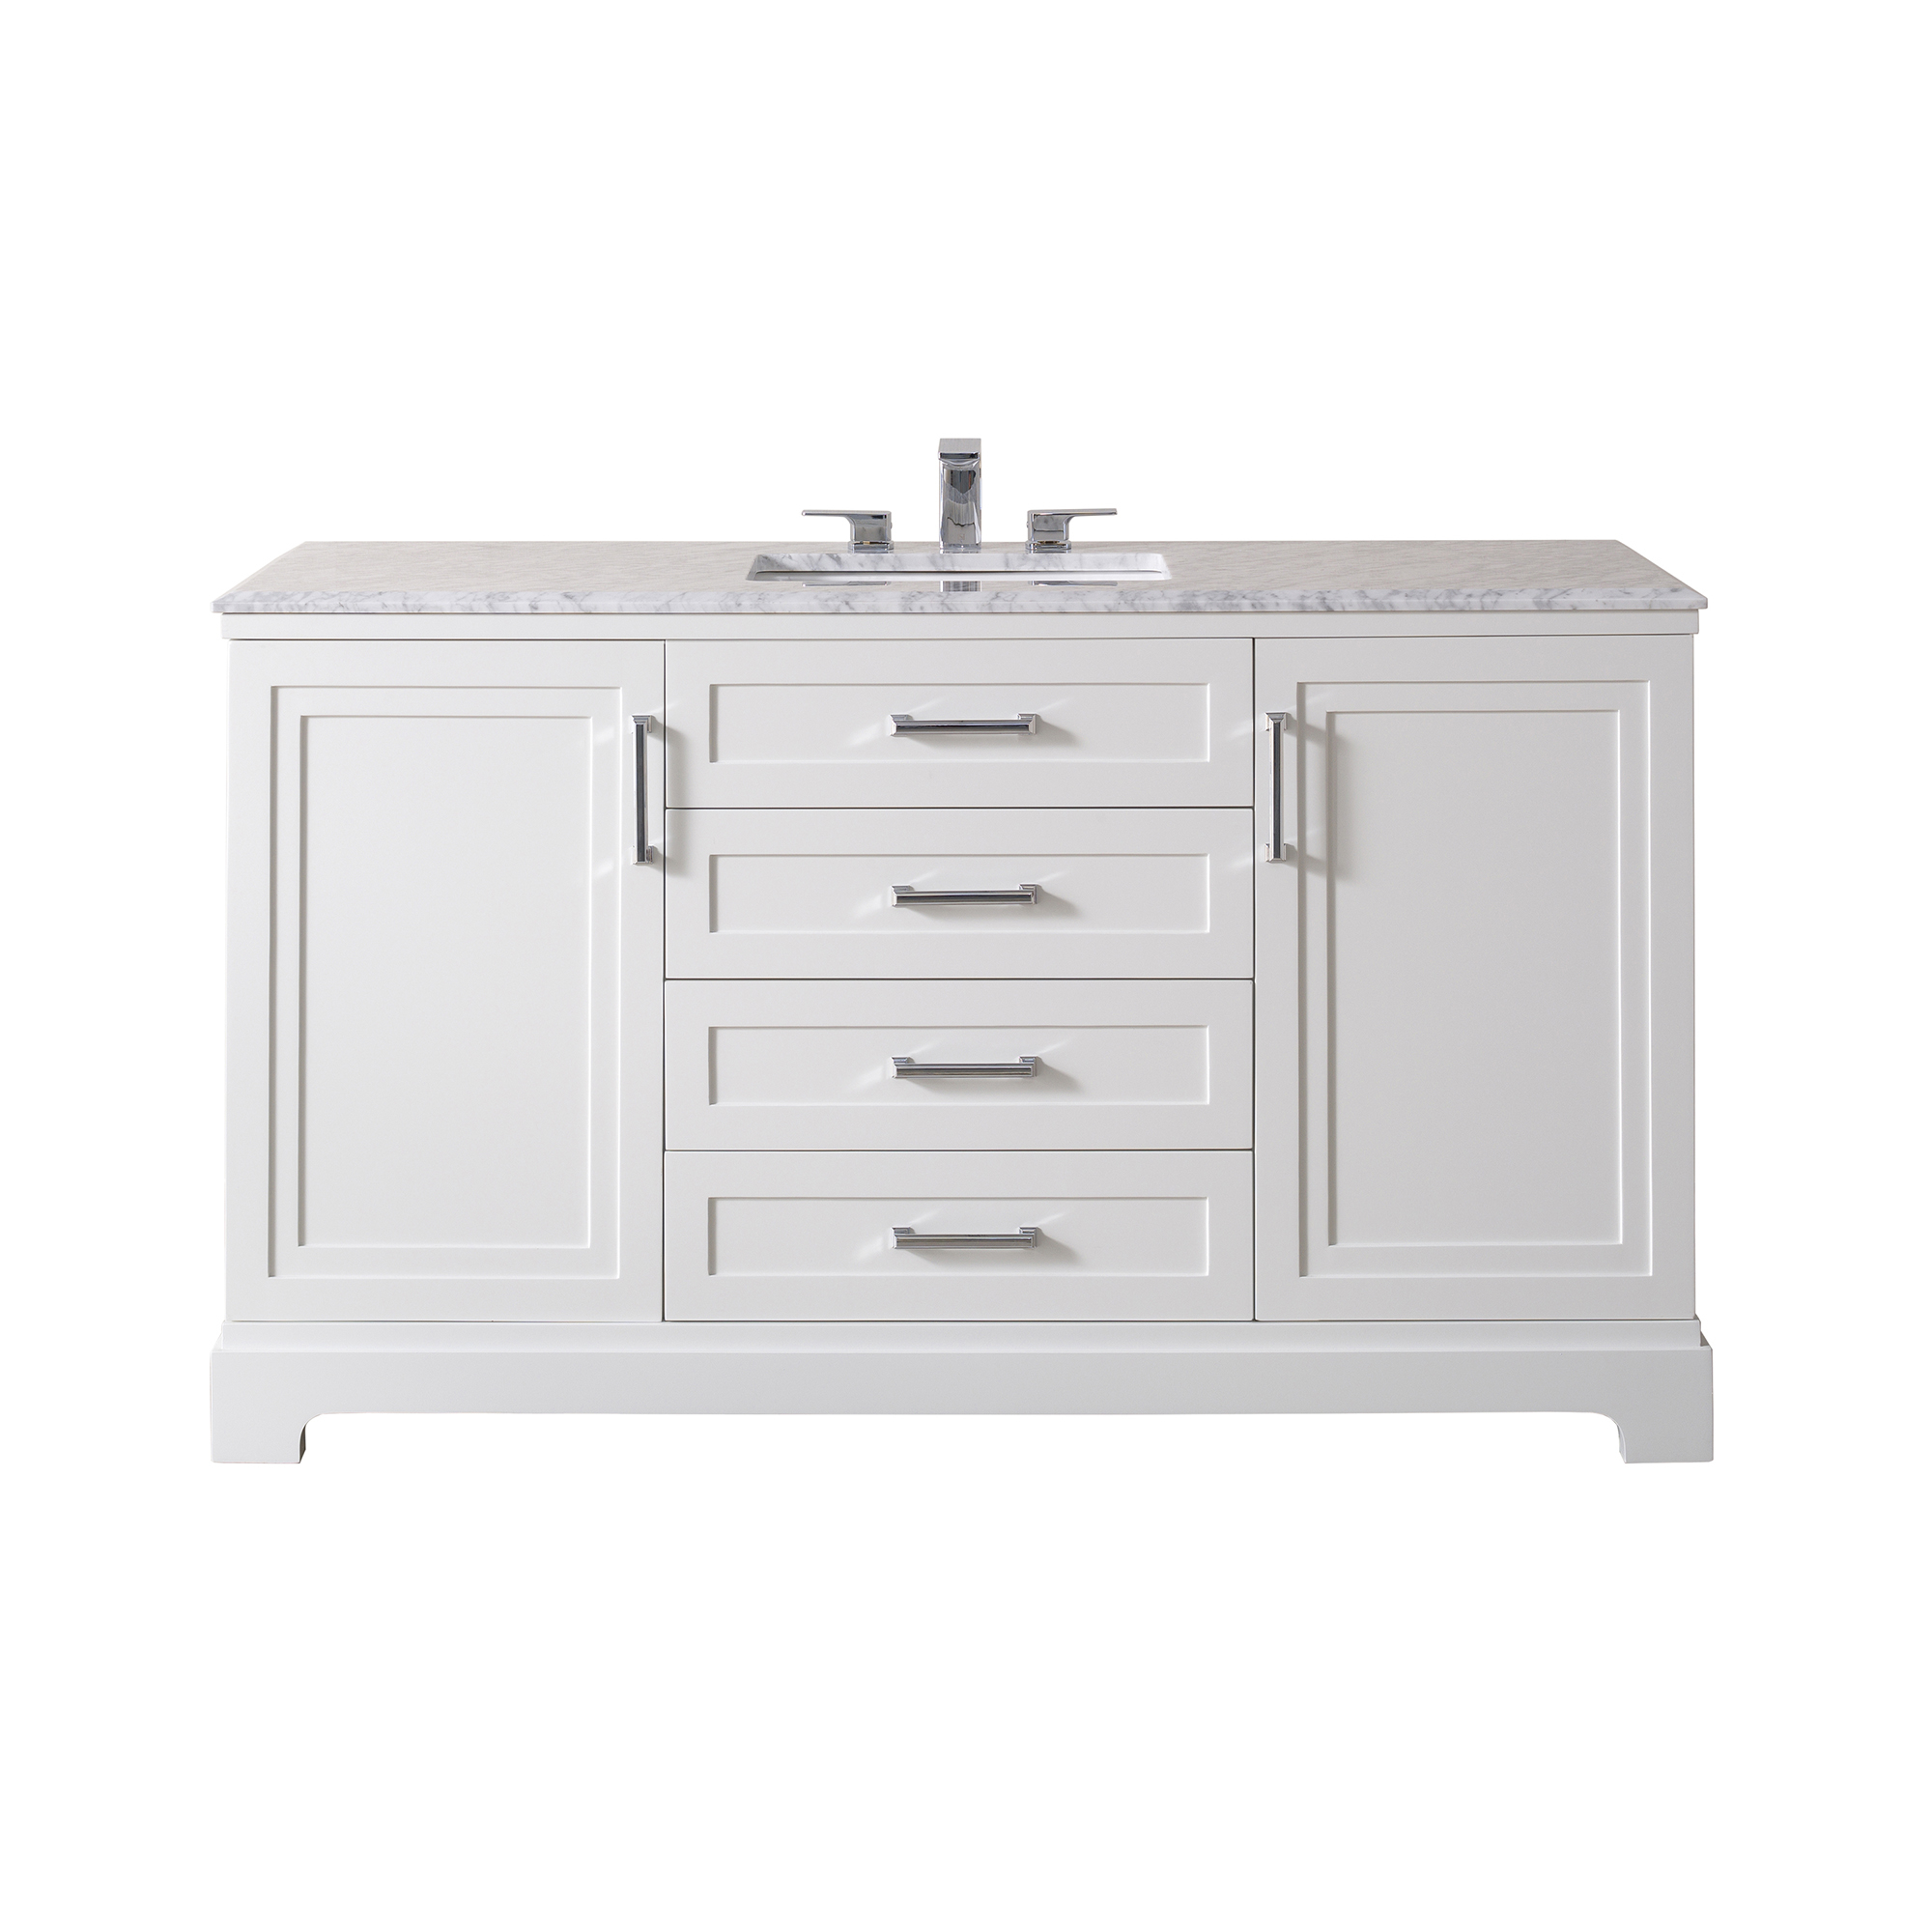 Idlewind 60 Inch White Single Sink Bathroom Vanity with Drain and Faucet in Chrome / Matte Black - Chrome